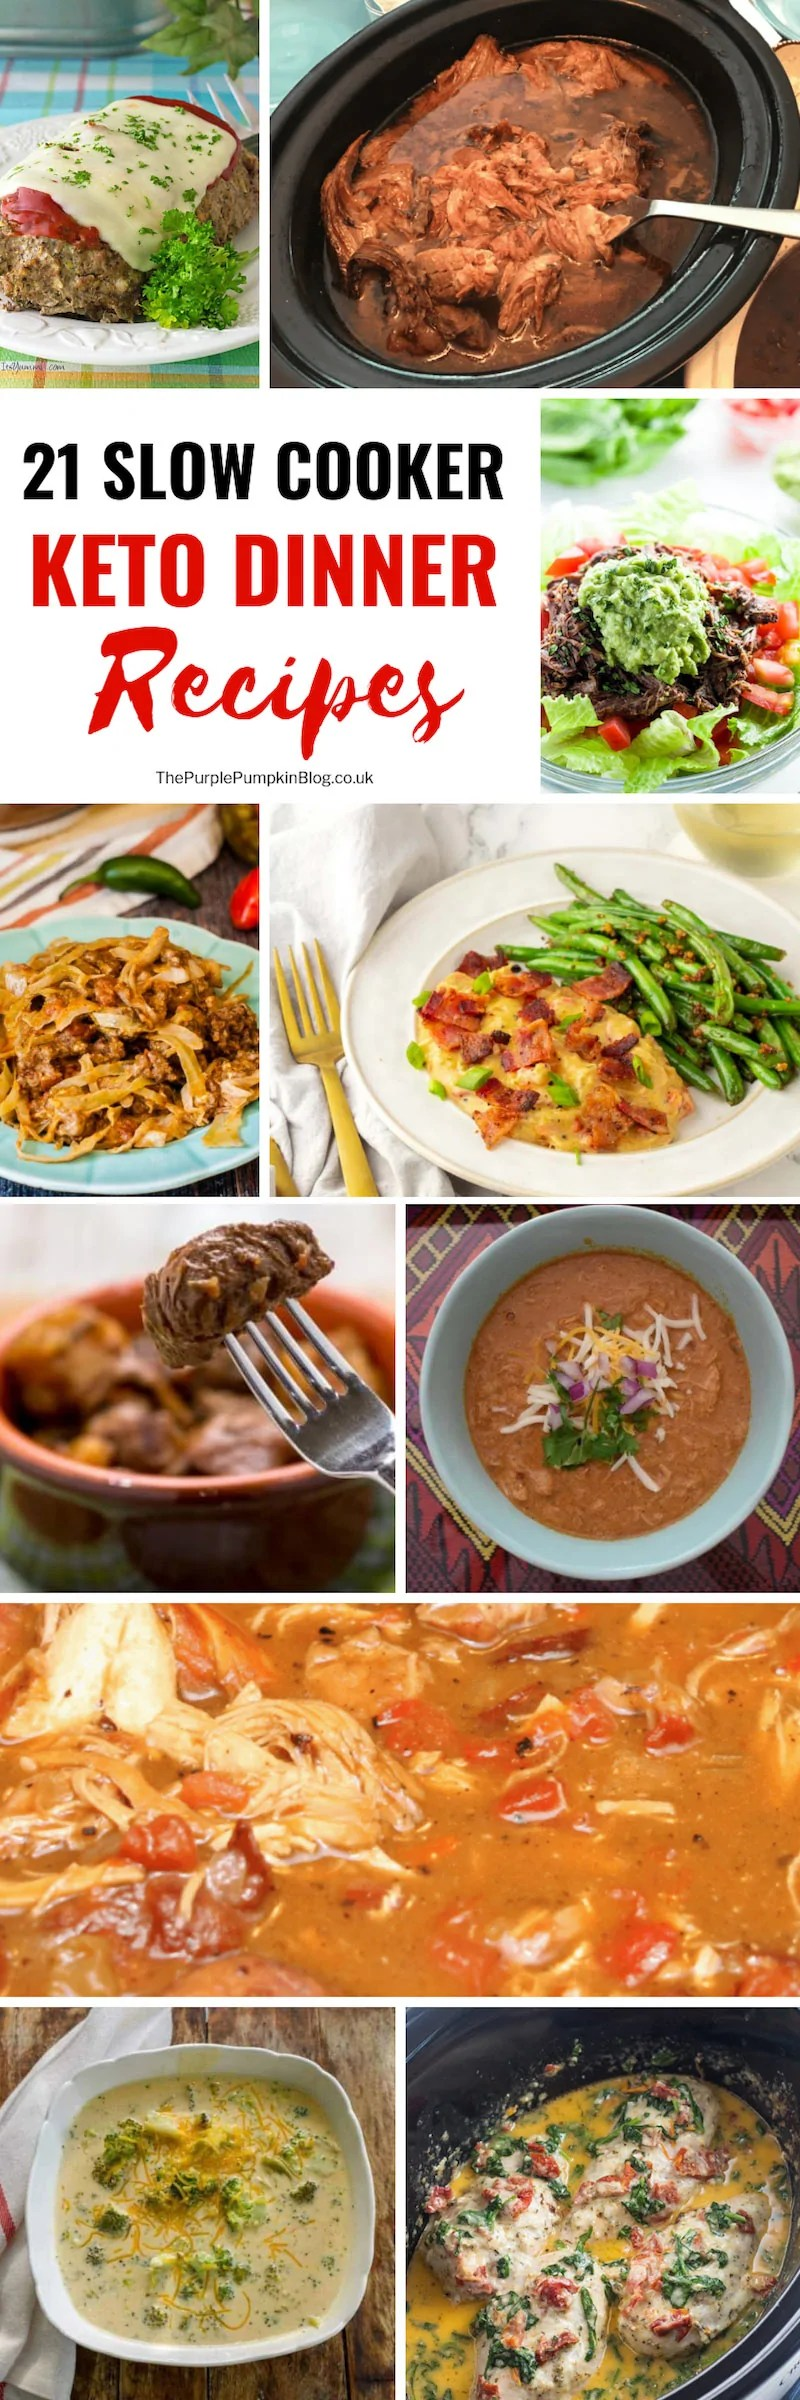 Take the stress out of dinner time with one of these slow cooker keto dinner recipes. Just dump all the ingredients into a slow cooker/crock pot and go about your day, knowing that a delicious low carb, keto dinner is waiting for you!